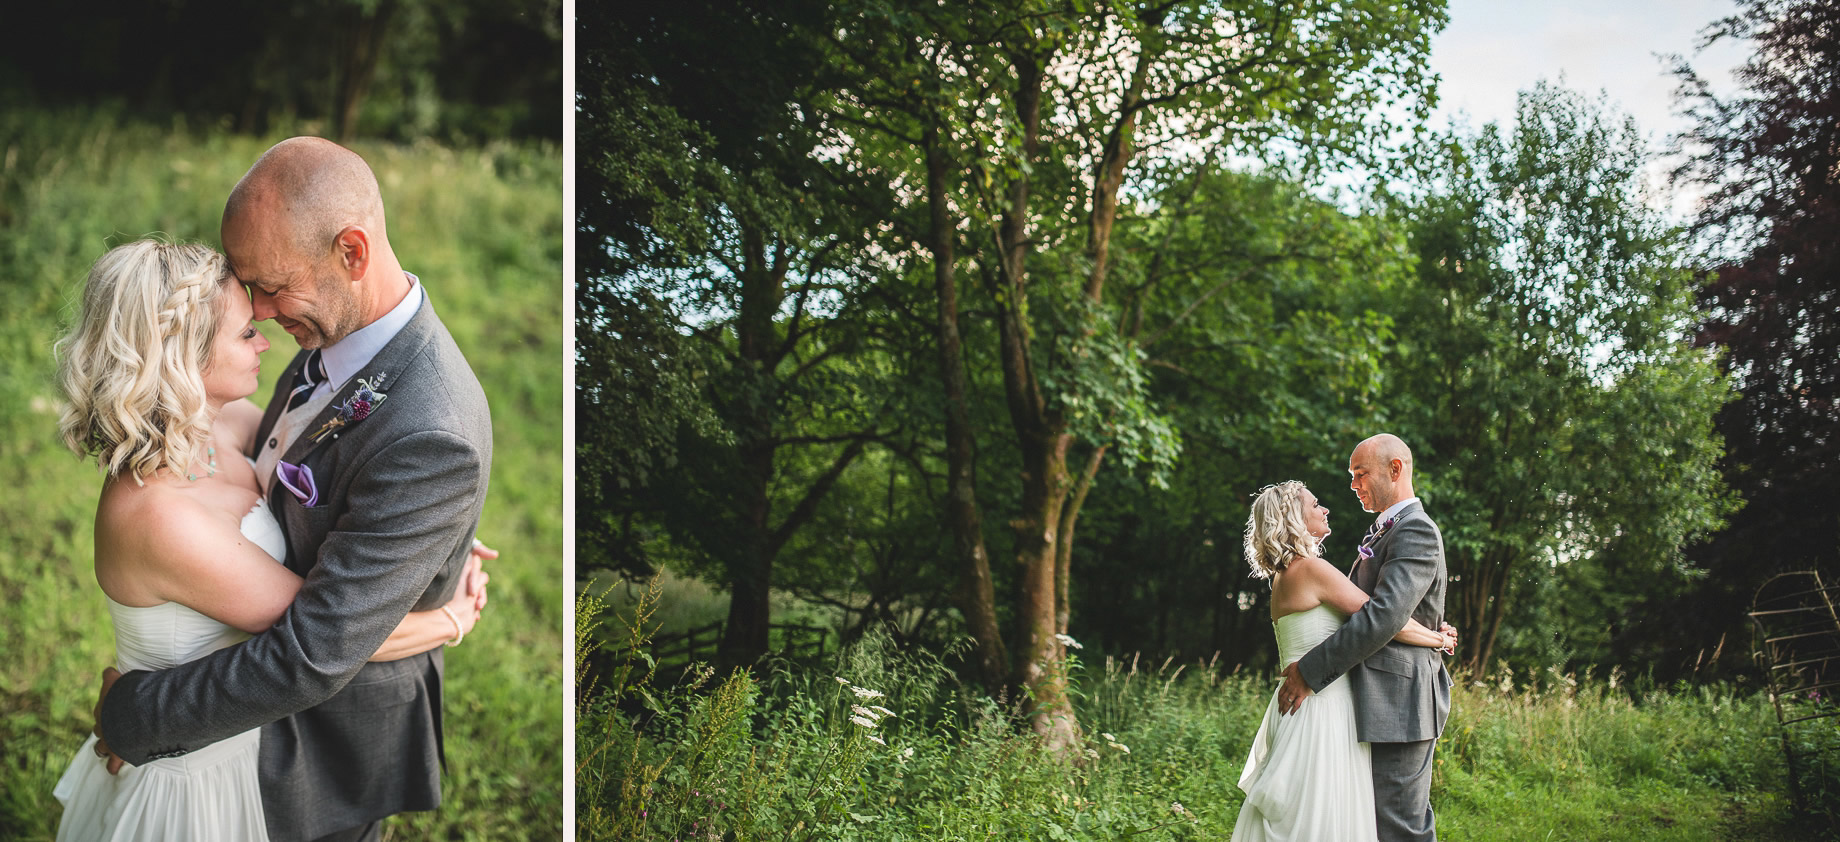 Tess and Paul's Wedding at The Inn at Whitewell 123